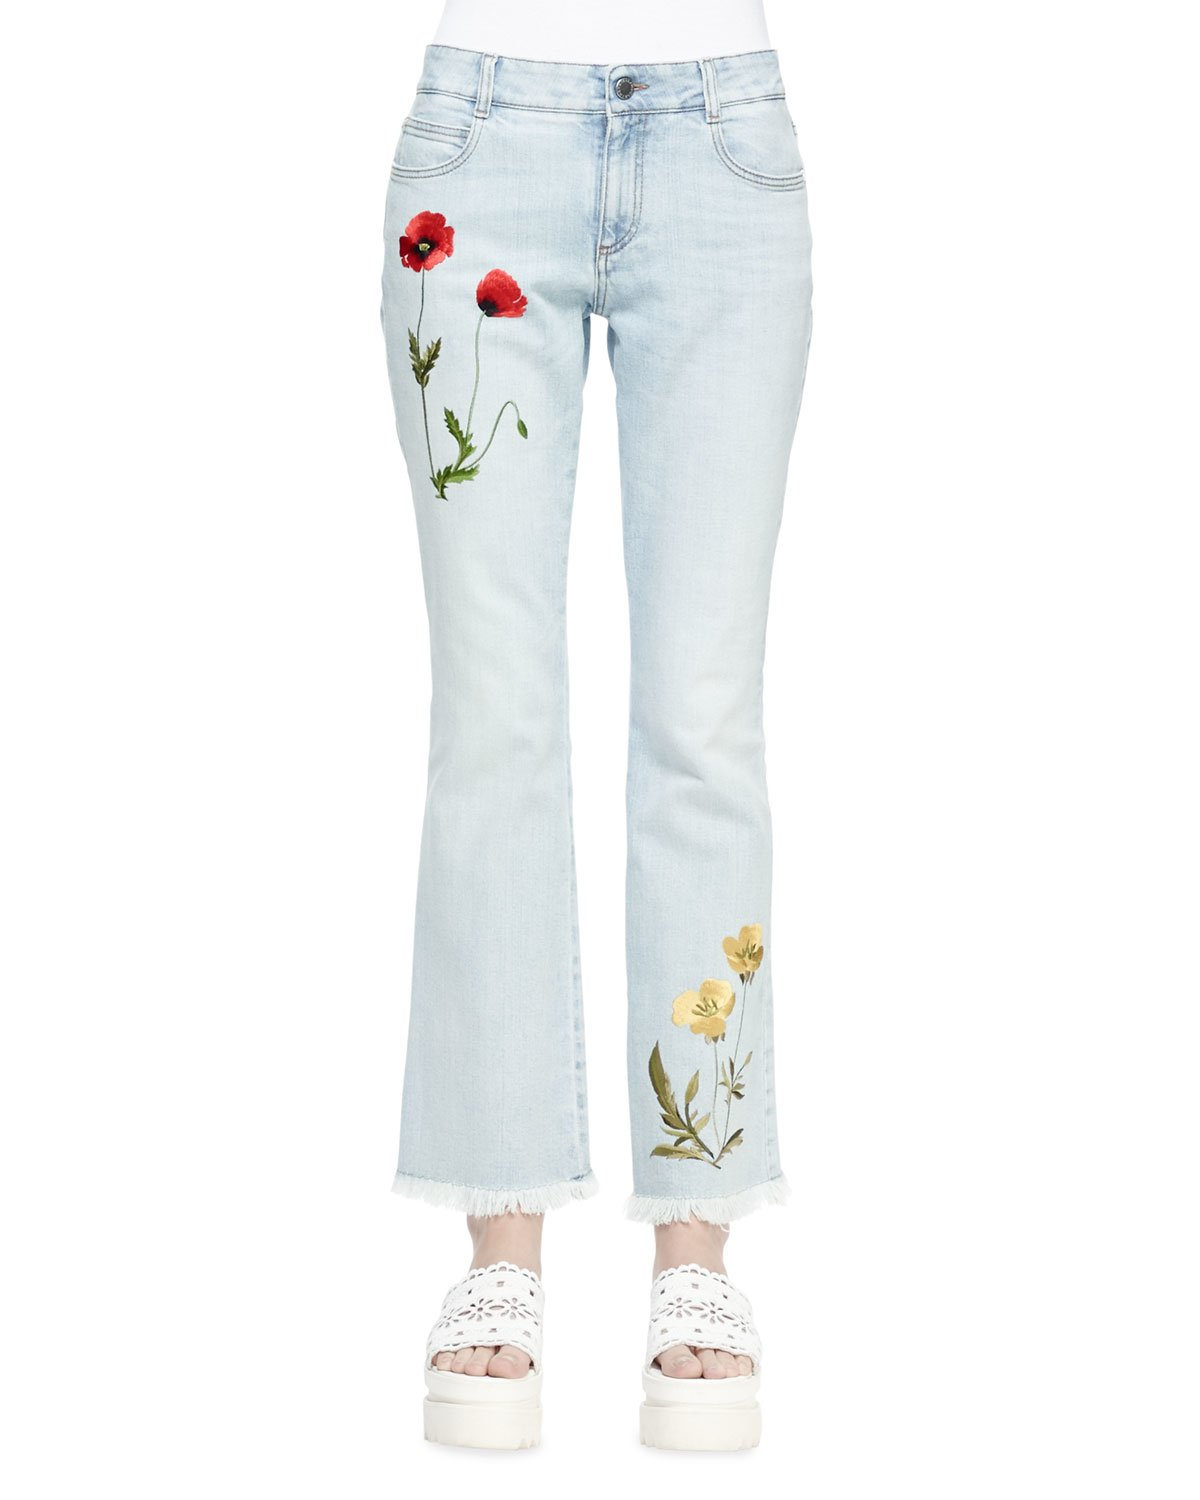 Sale Explore Embroidered jeans Stella McCartney Discount Cheapest Price Discount Footlocker Pictures phMPnjiXHh